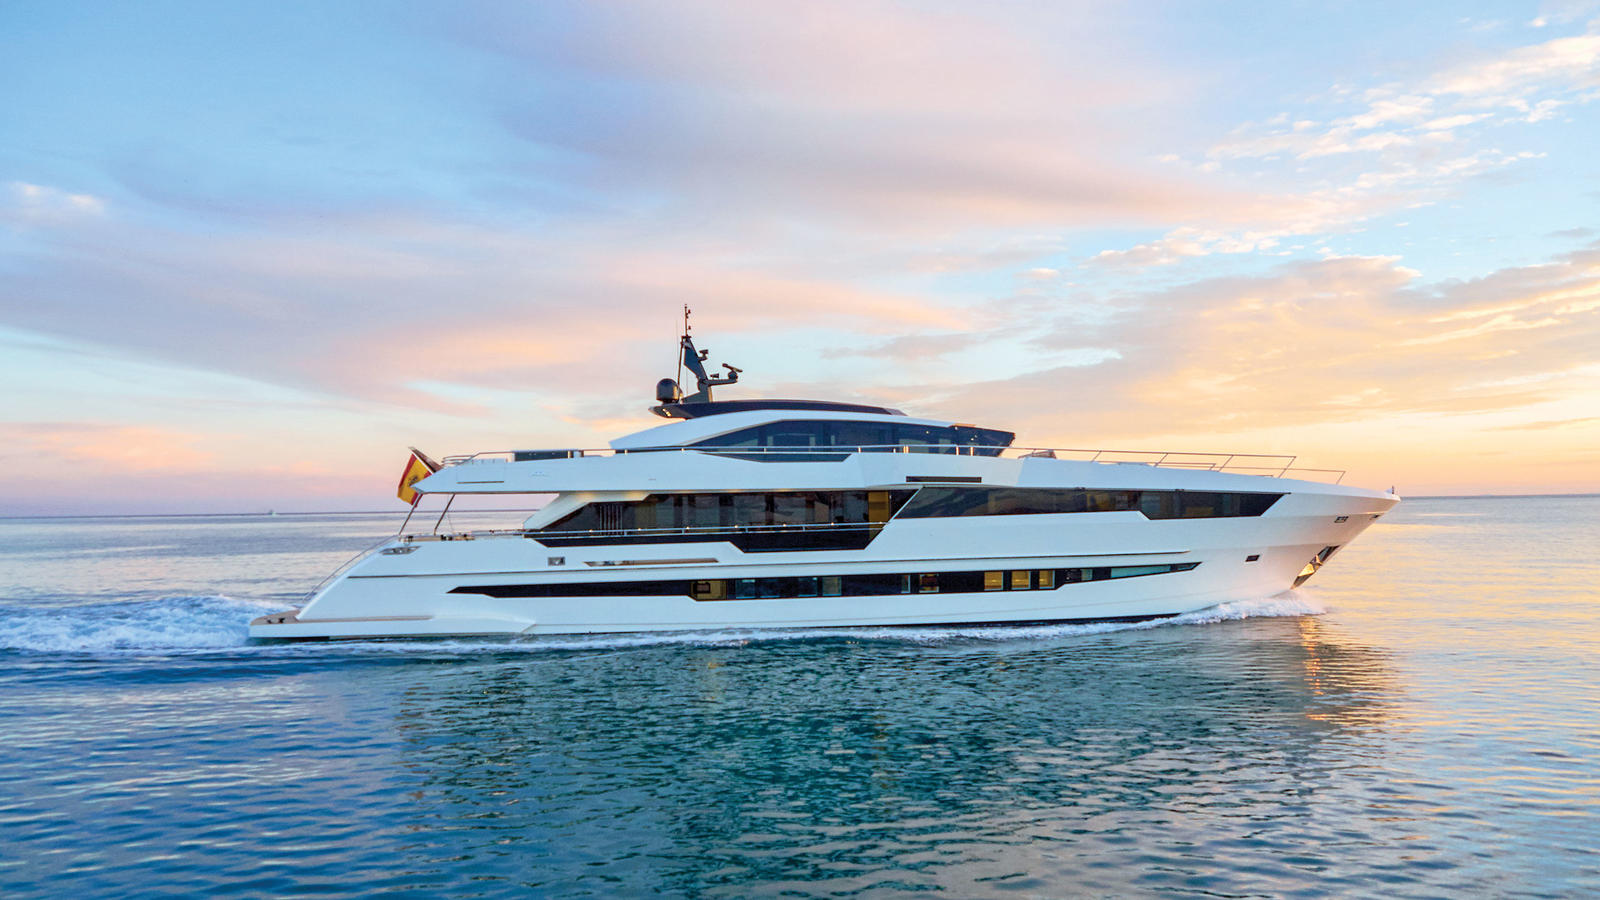 5 MUST-SEE NEW SUPER YACHTS AT THE FORT LAUDERDALE BOAT SHOW